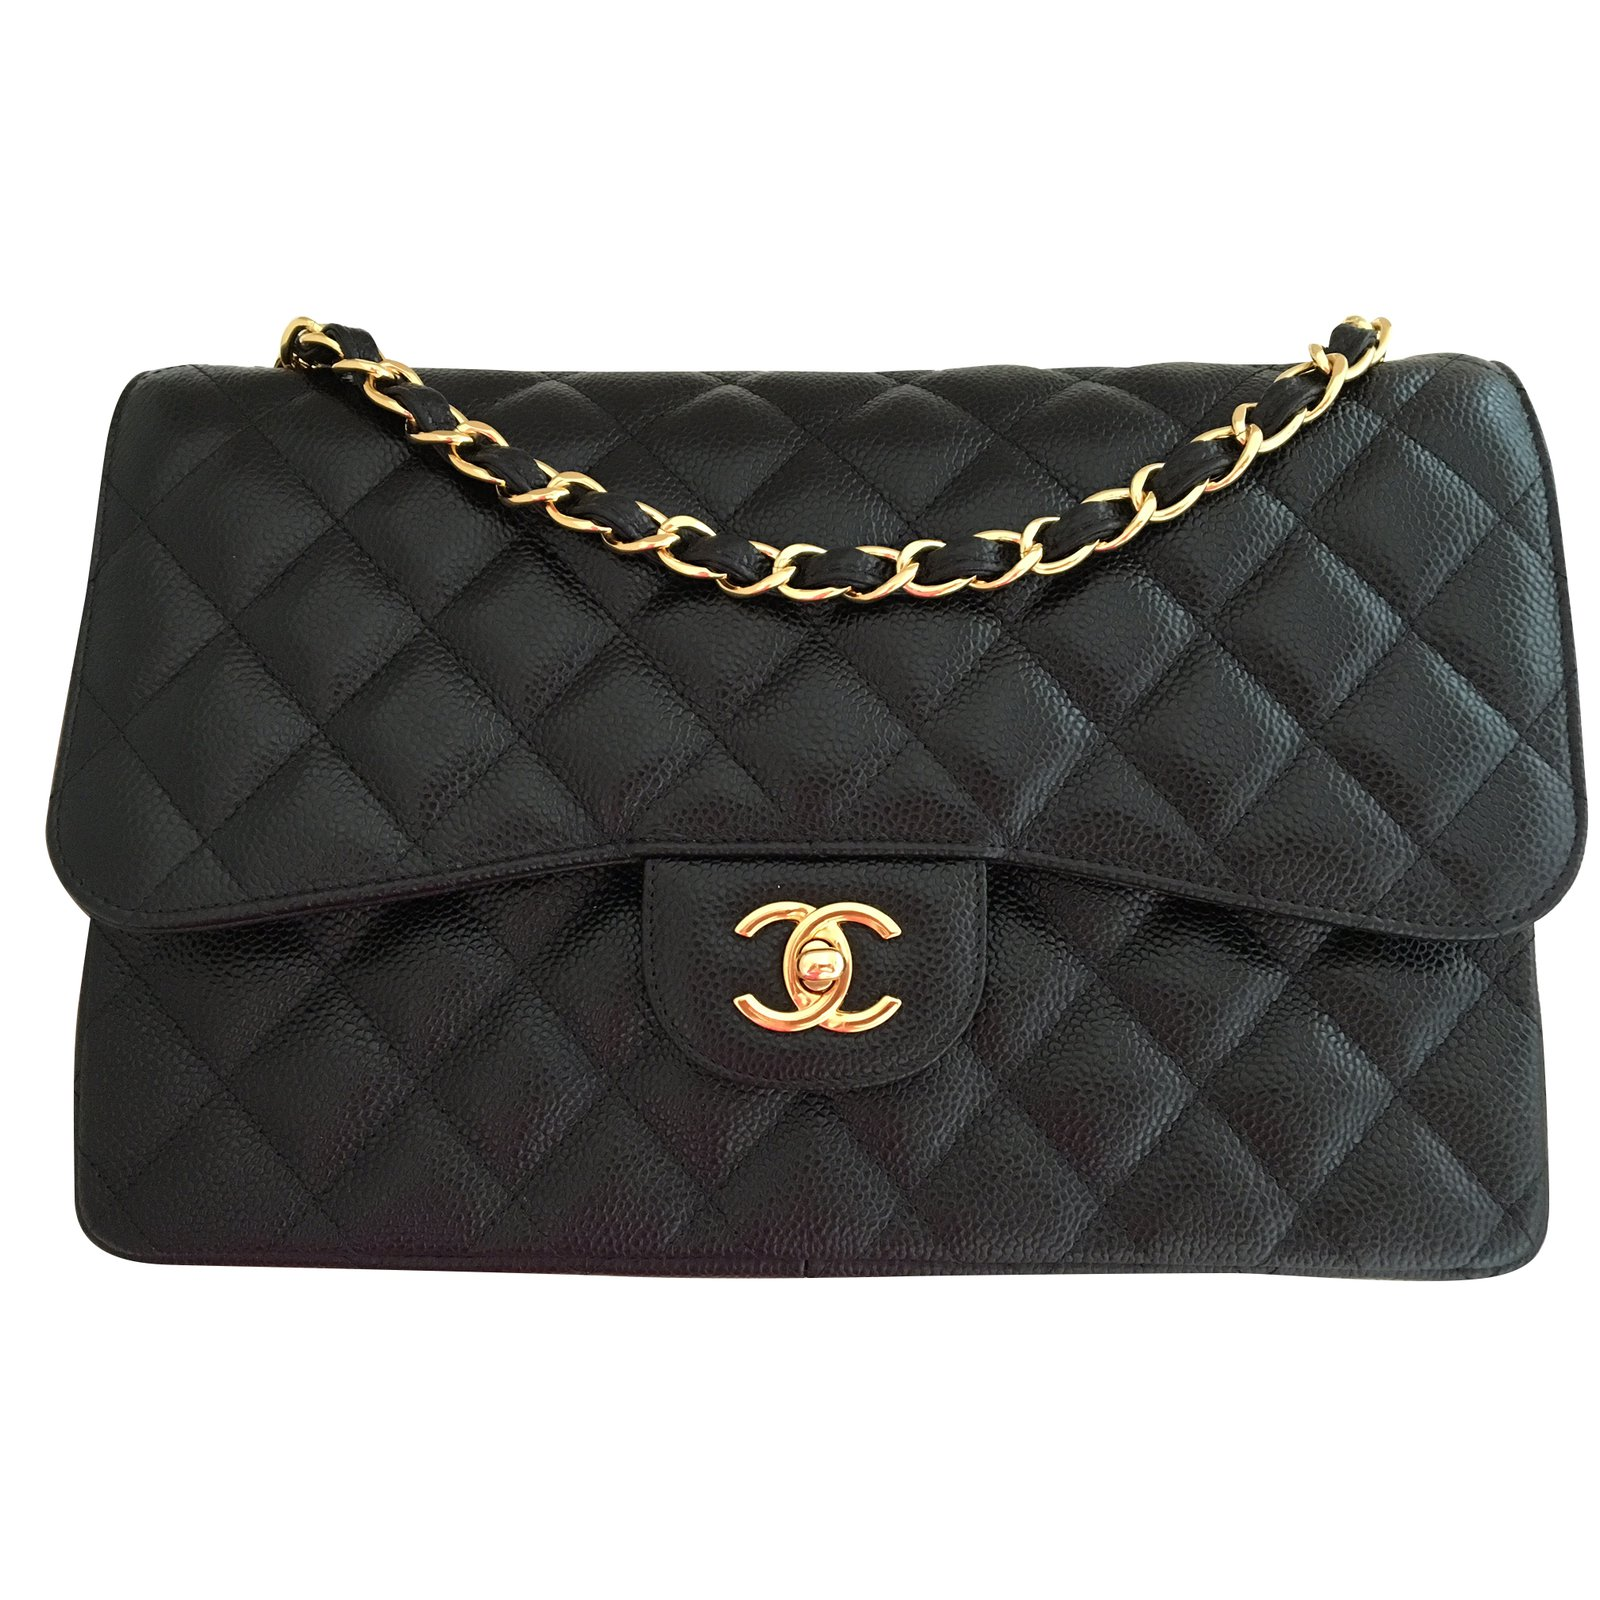 3c78566c76a Chanel CHANEL Timeless classic double flap JUMBO caviar Handbags Leather  Black ref.39490 - Joli